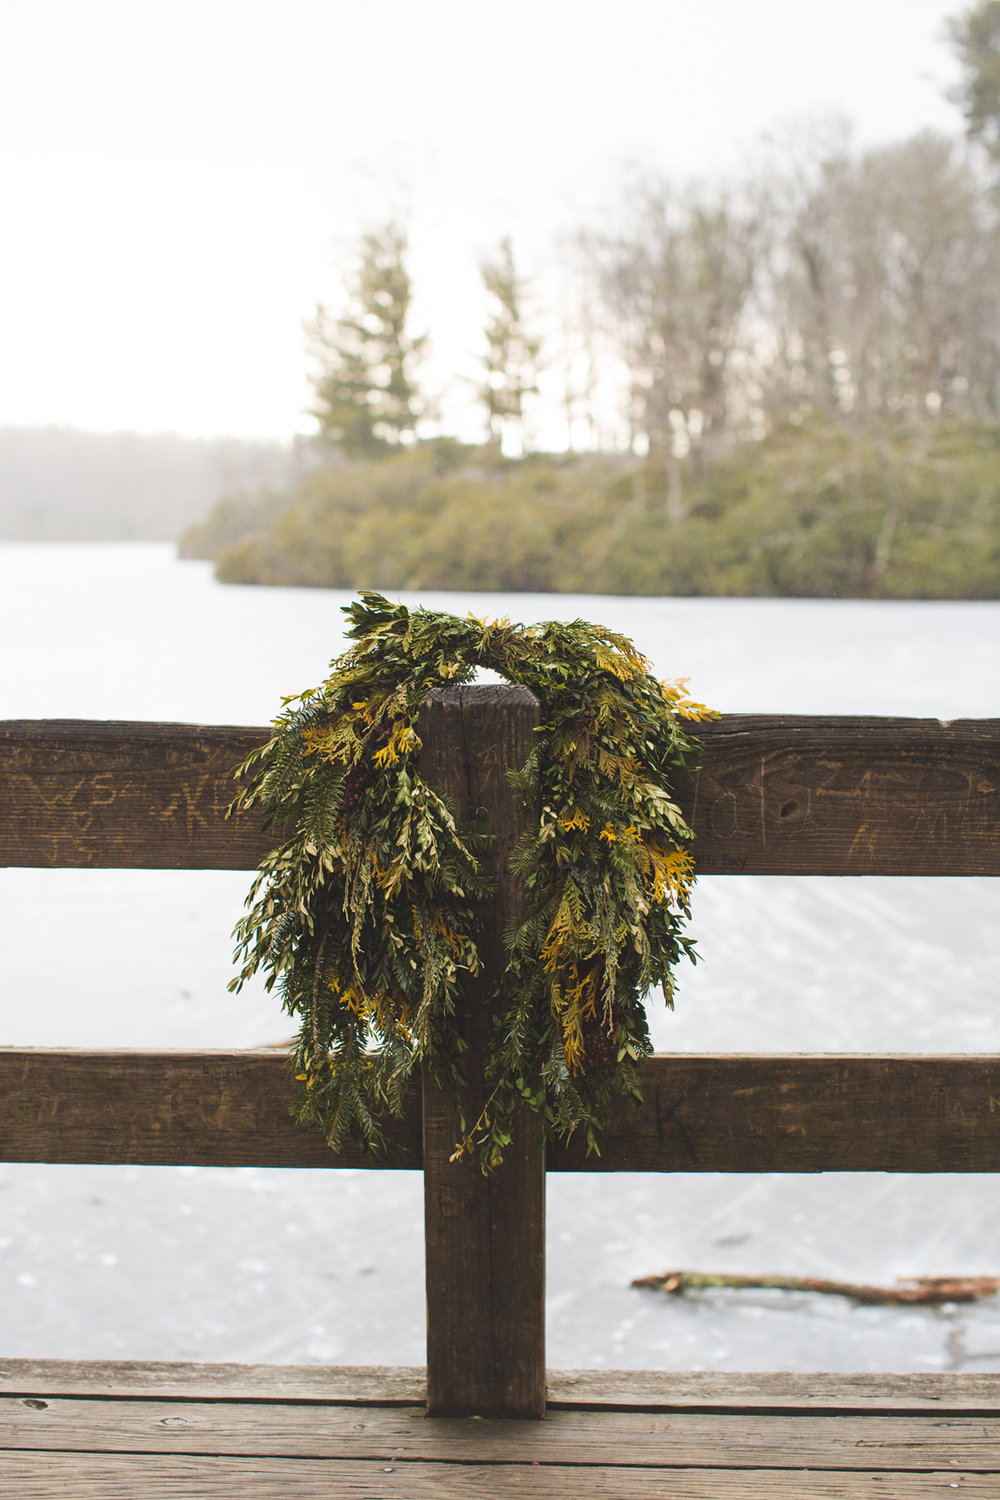 BlackMountainLakeWreath.jpg